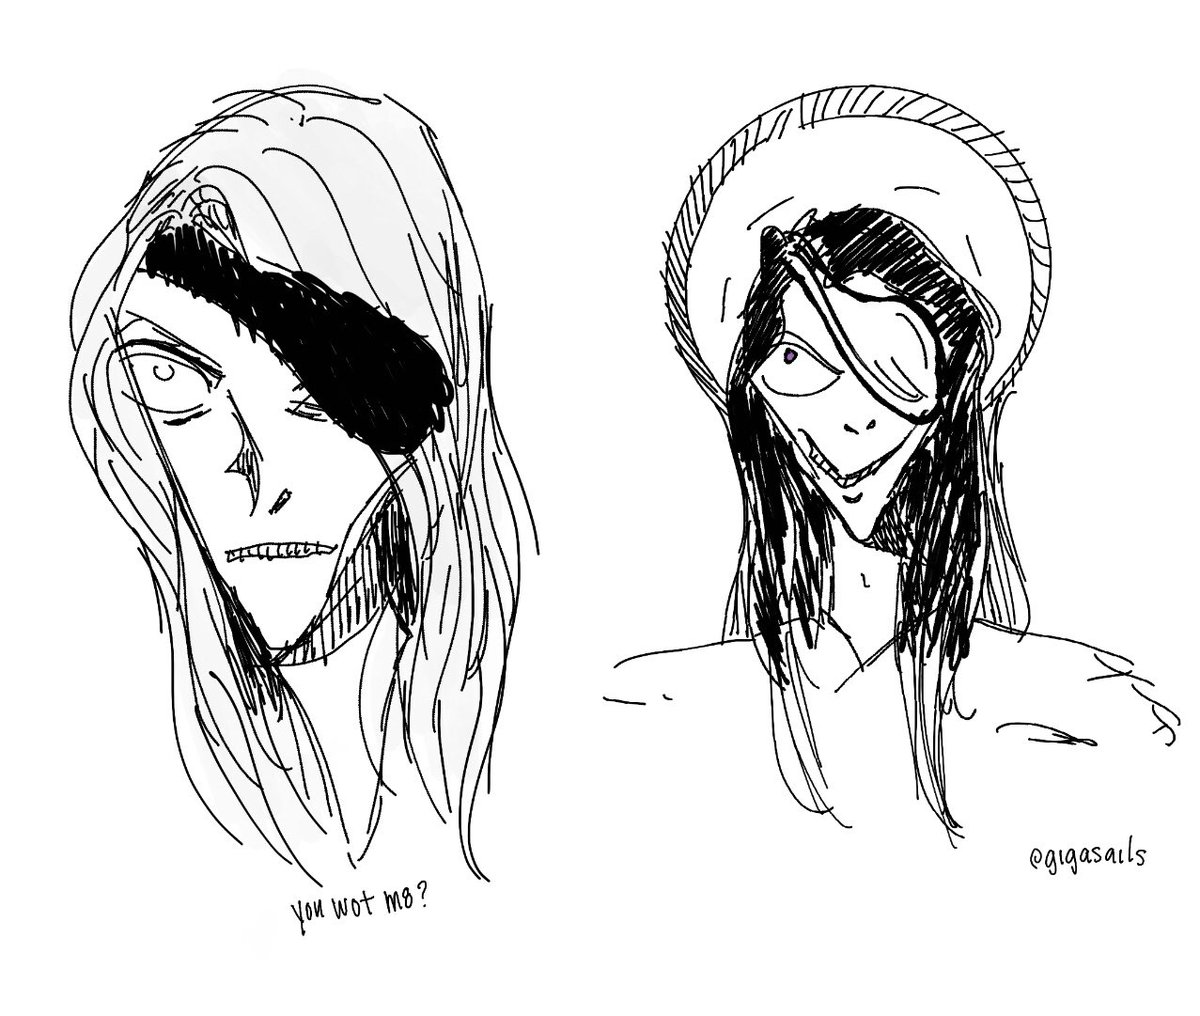 did some doodles of him as well.. my fave lad.pic.twitter.com/krDPq0ZxQl